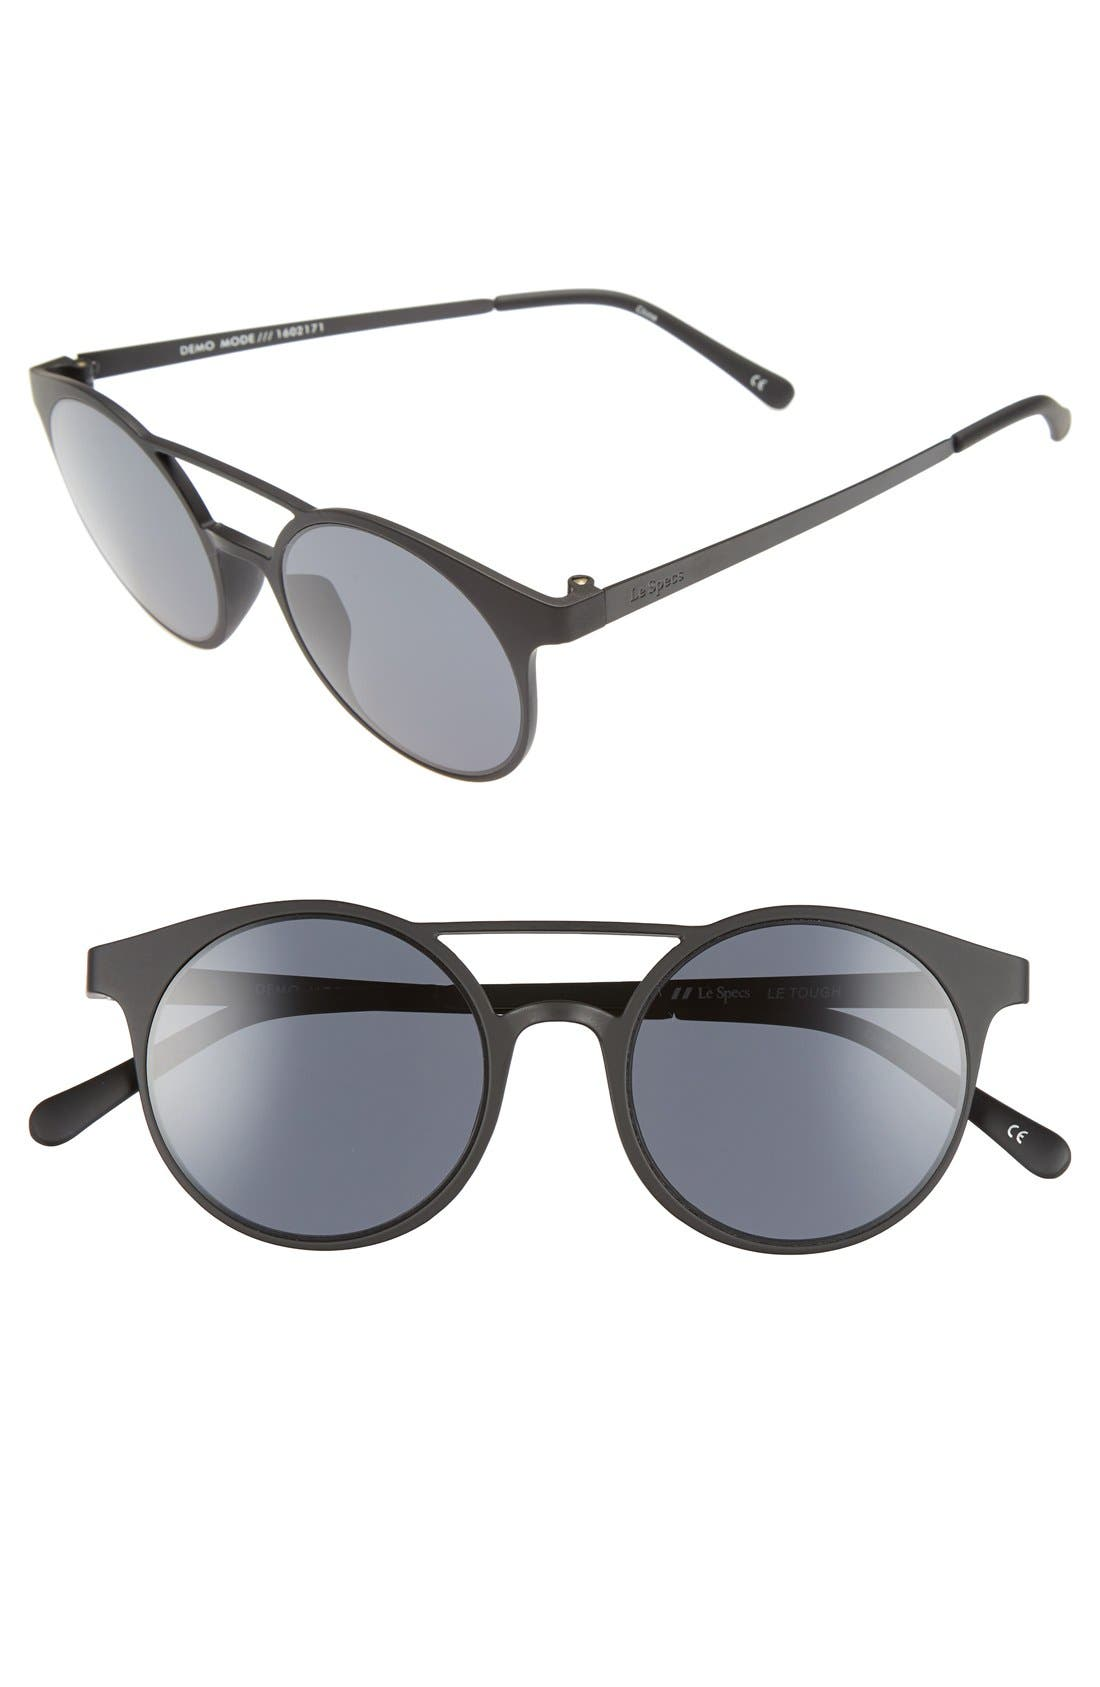 LE SPECS 'Demo Mode' 49mm Aviator Sunglasses, Main, color, 001